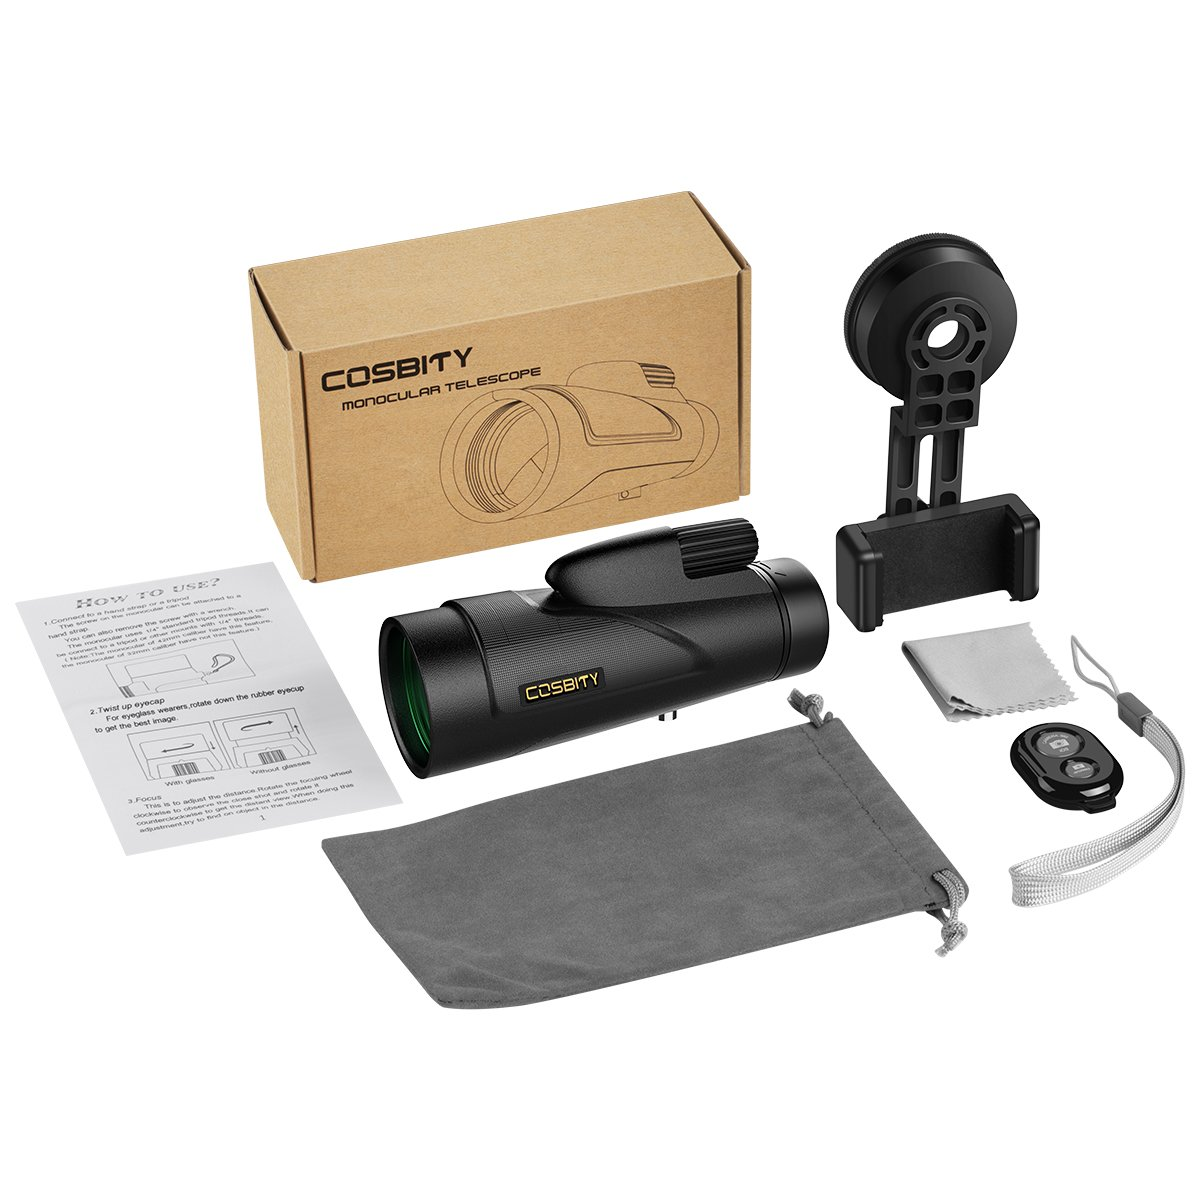 Monocular Telescopes 12x50 Low Night Vision Spotting Scope for Adults with Cell Phone Photography Adapter and Wireless Camera Shutter Remote Control for Bird Watching//Hunting//Camping//Travelling